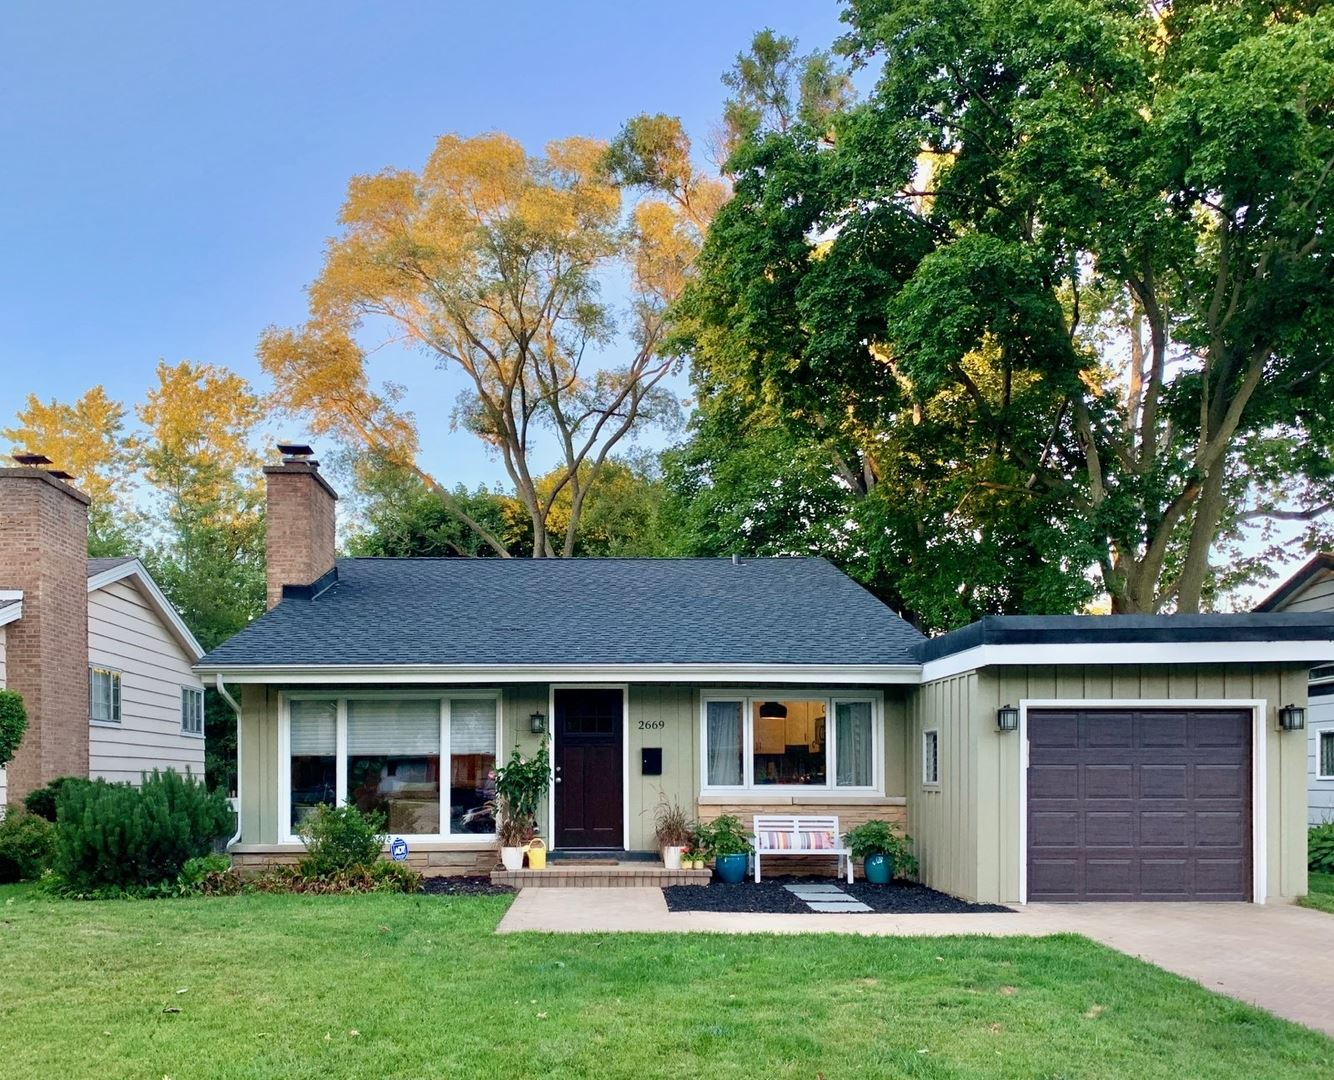 Photo for 2669 Crawford Avenue, Evanston, IL 60201 (MLS # 10798182)